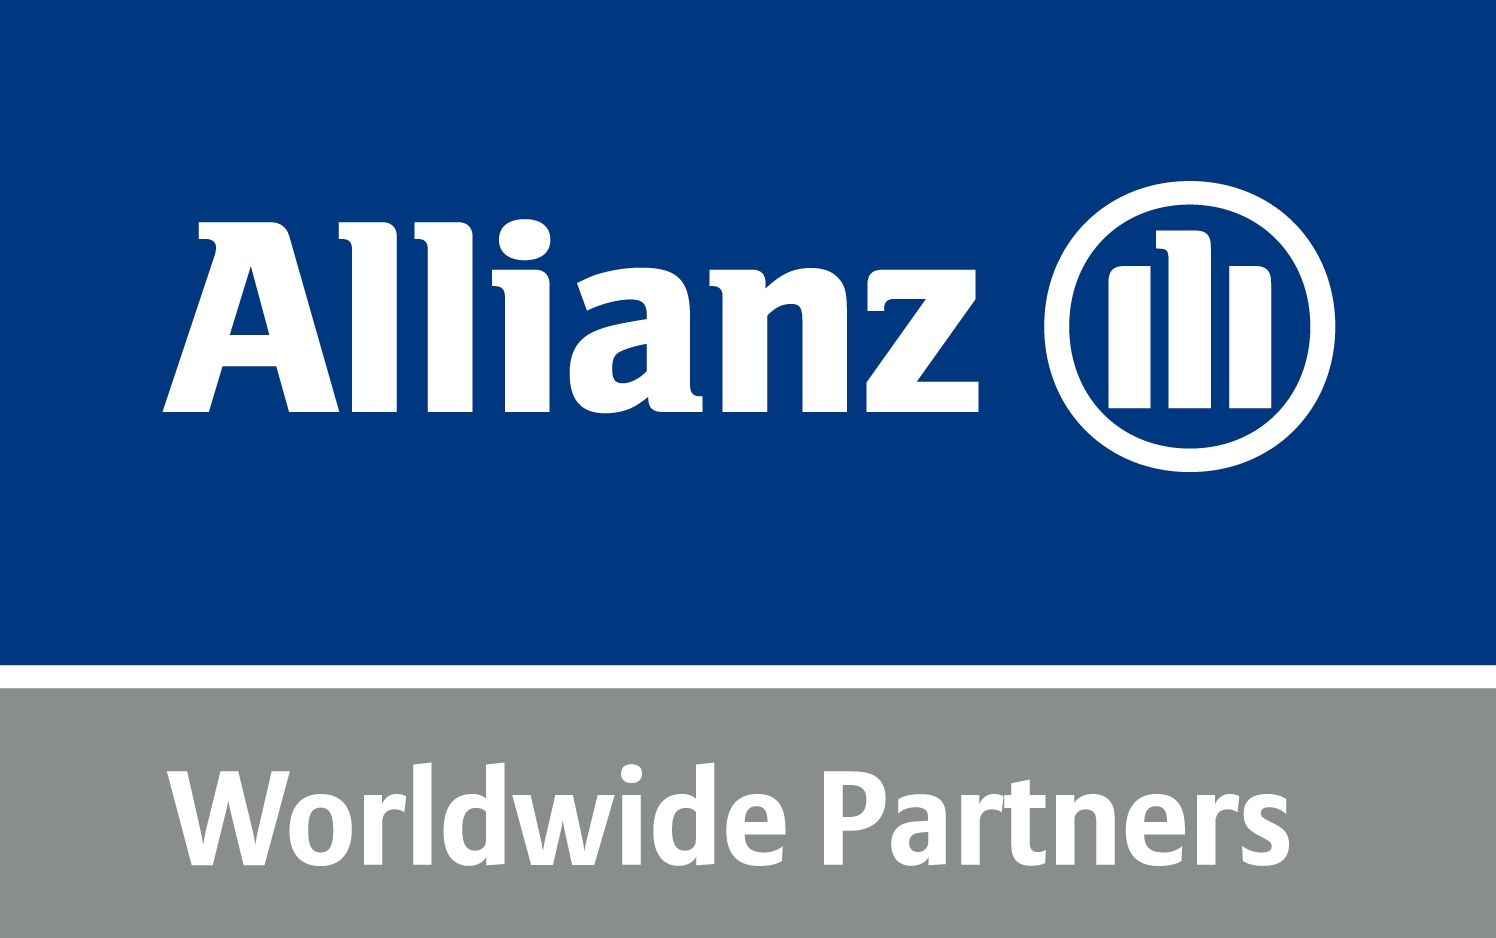 allianz-worldwide-partners-hires